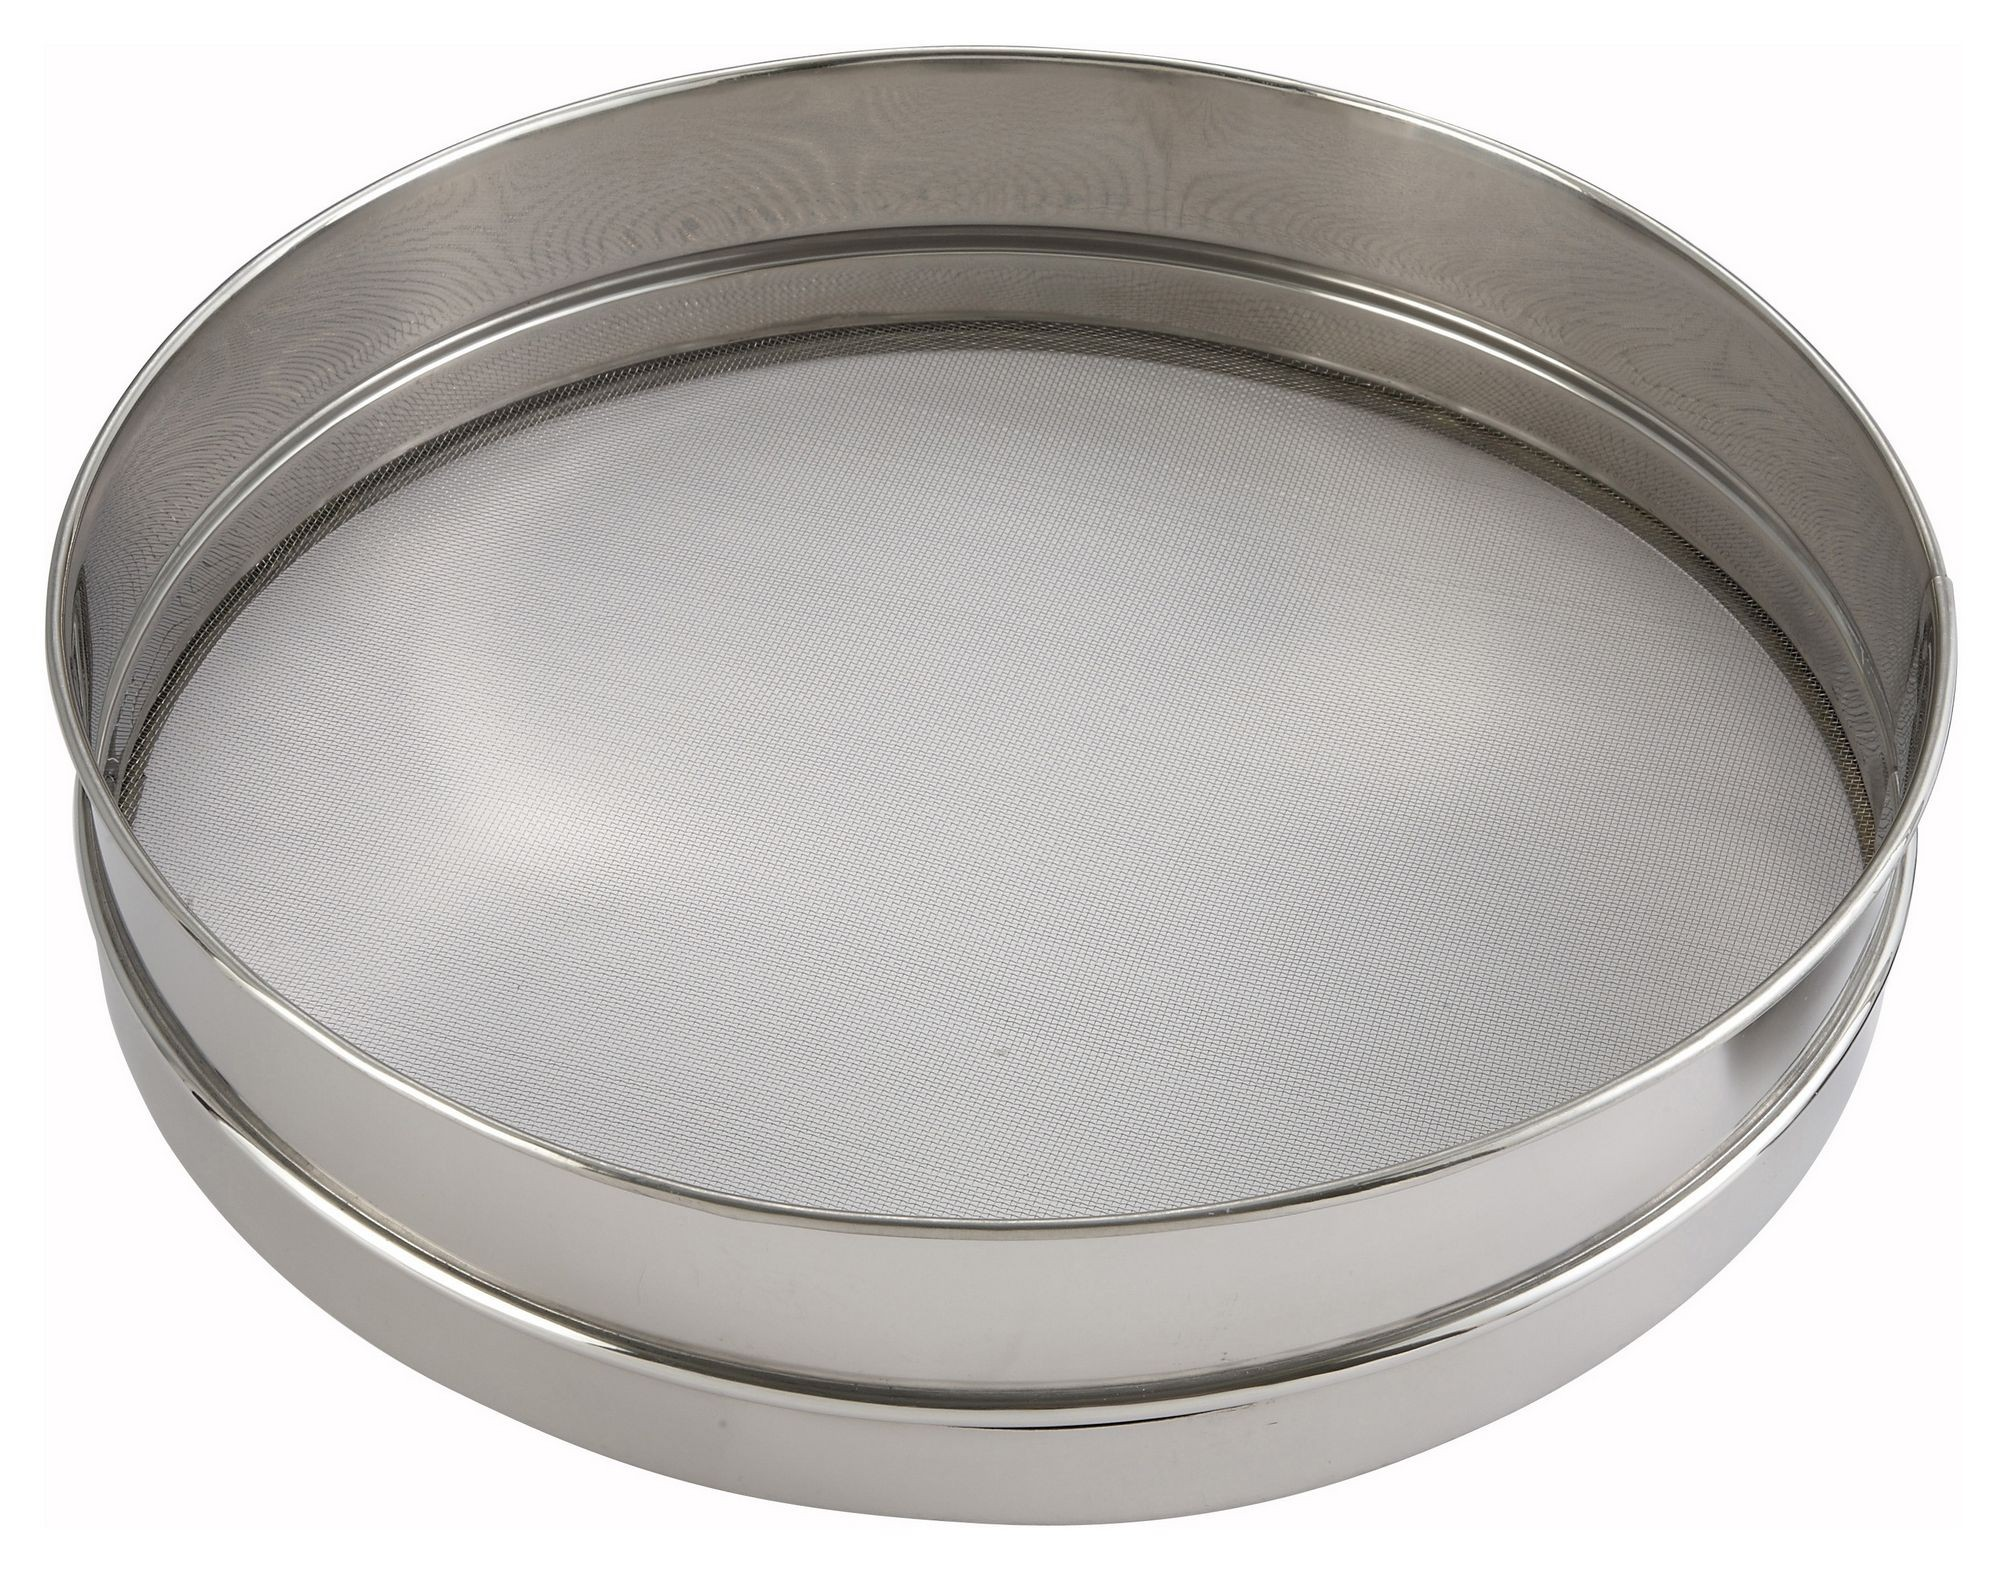 Stainless Steel Sieve With Rim/Mesh - 16 Dia. x 3 Deep